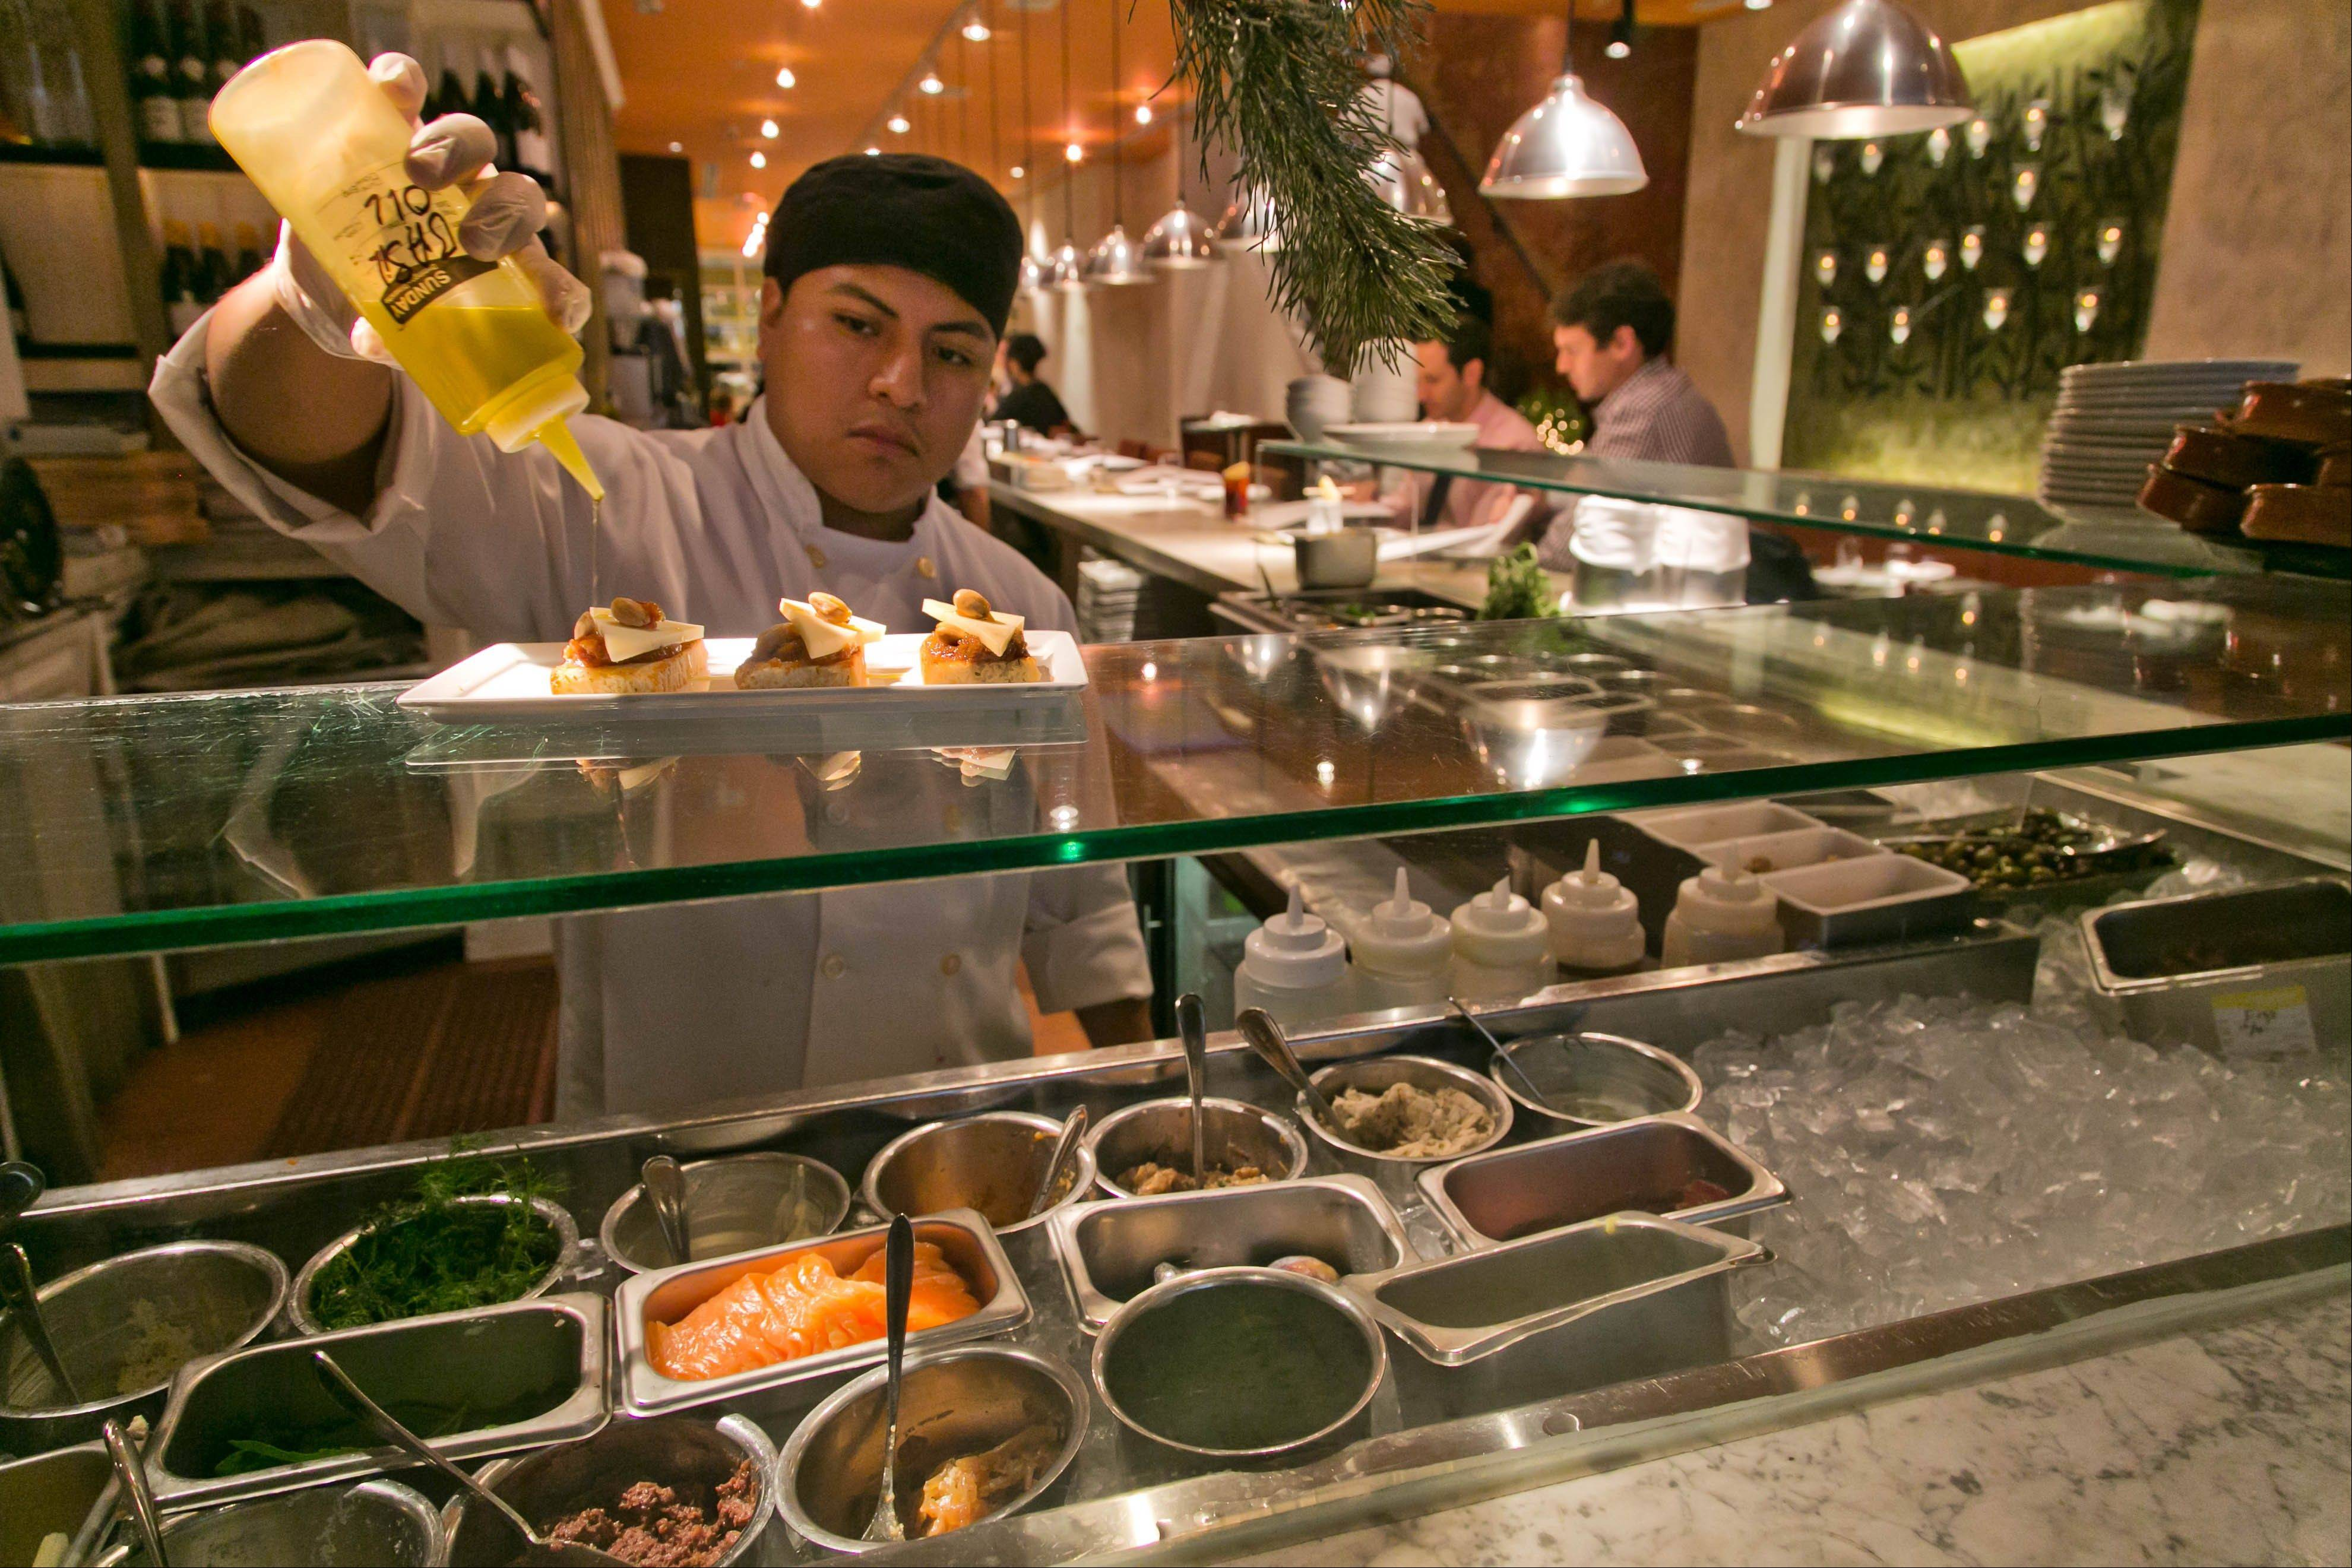 A dish gets prepped at Fig & Olive restaurant near New York's Rockefeller Center. Rockefeller Center is crowded at Christmastime, but visitors can choose from a variety of places to eat in the area, from ethnic food and street carts to sit-down dining.